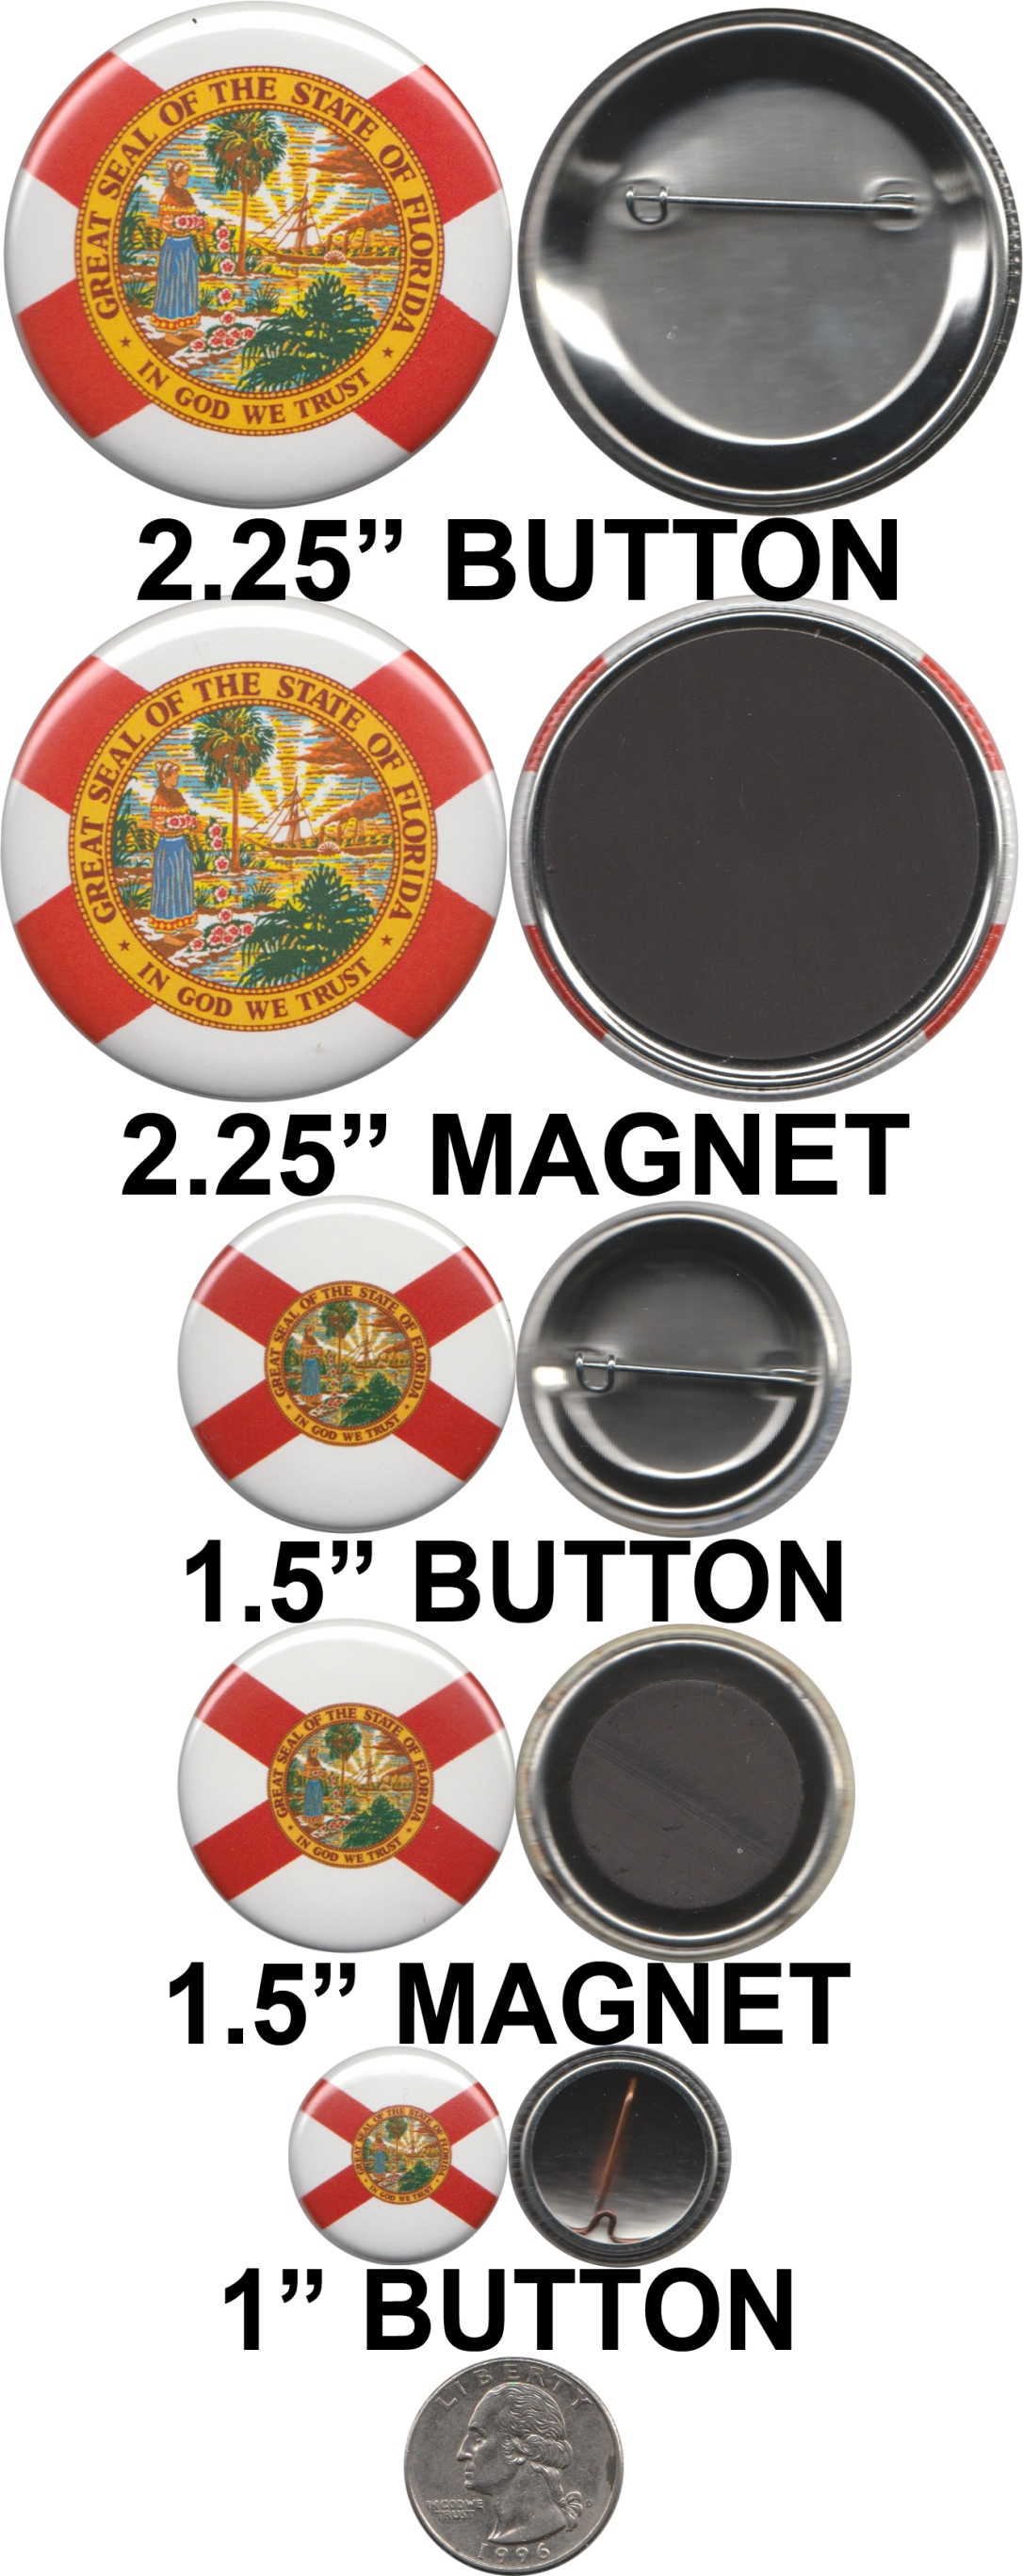 Button-Magnet Diagram.jpg